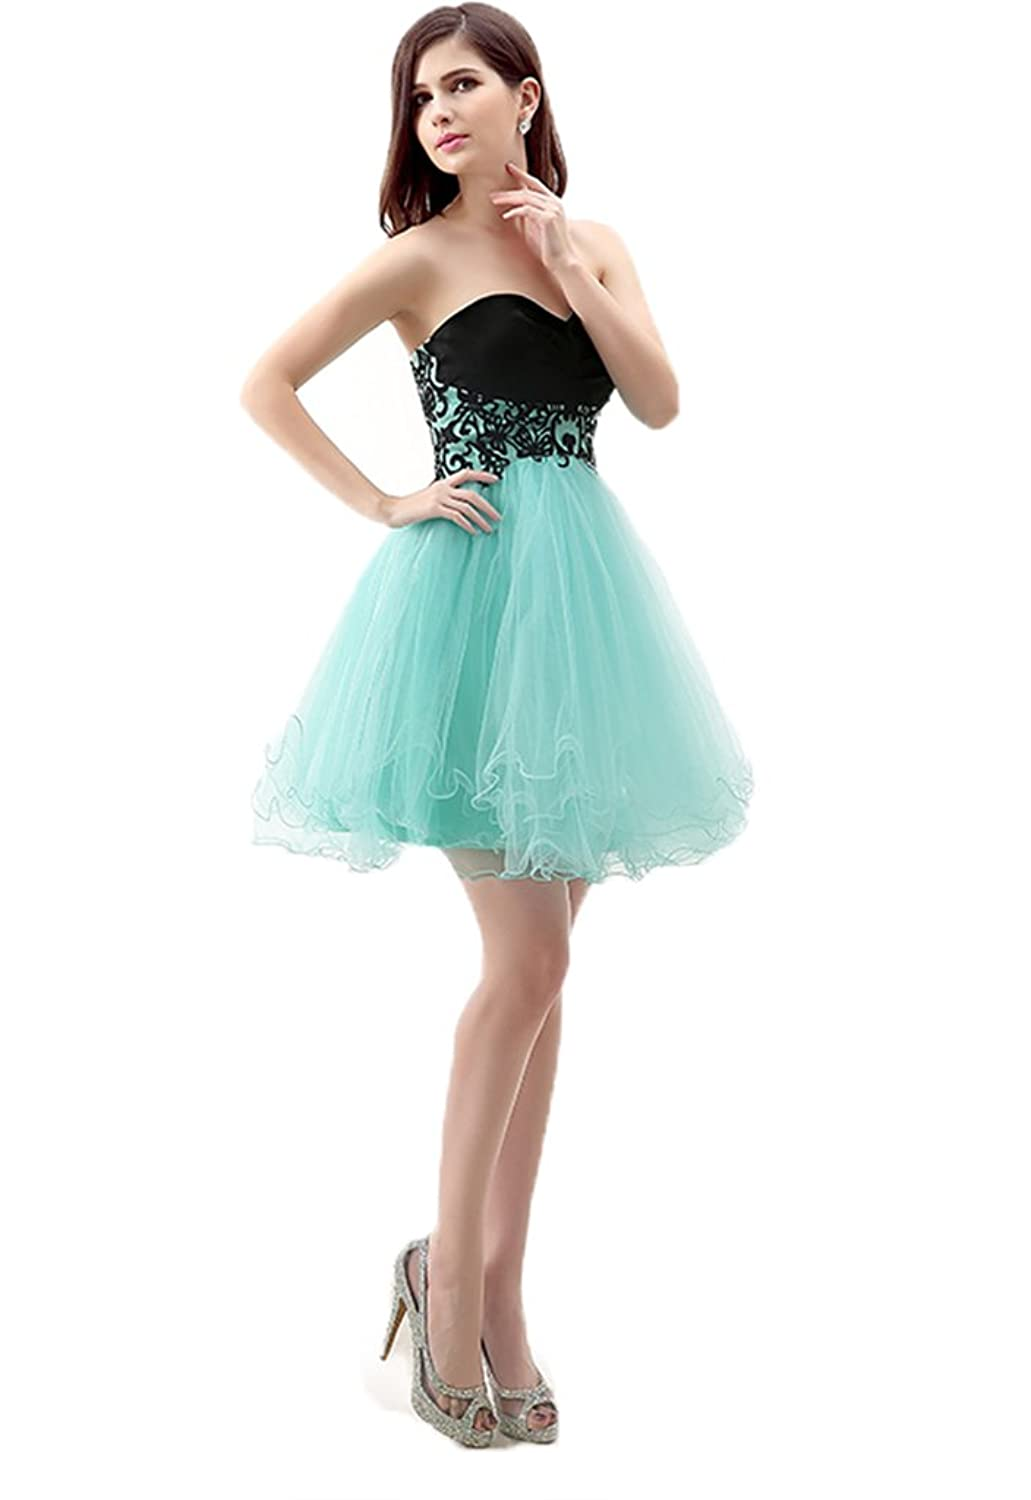 Anna's Bridal Women's Organza Short Homecoming Dresses Prom Gowns